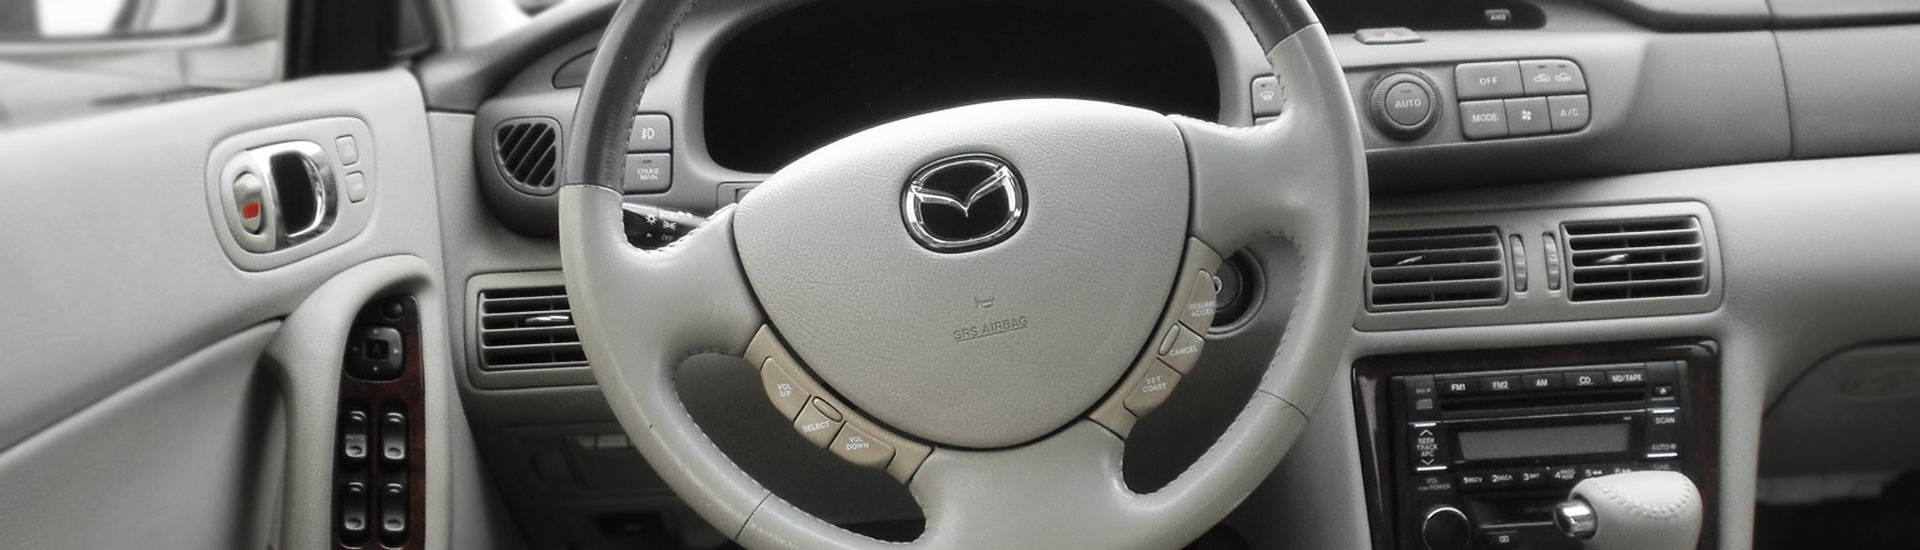 Mazda Millenia Custom Dash Kits